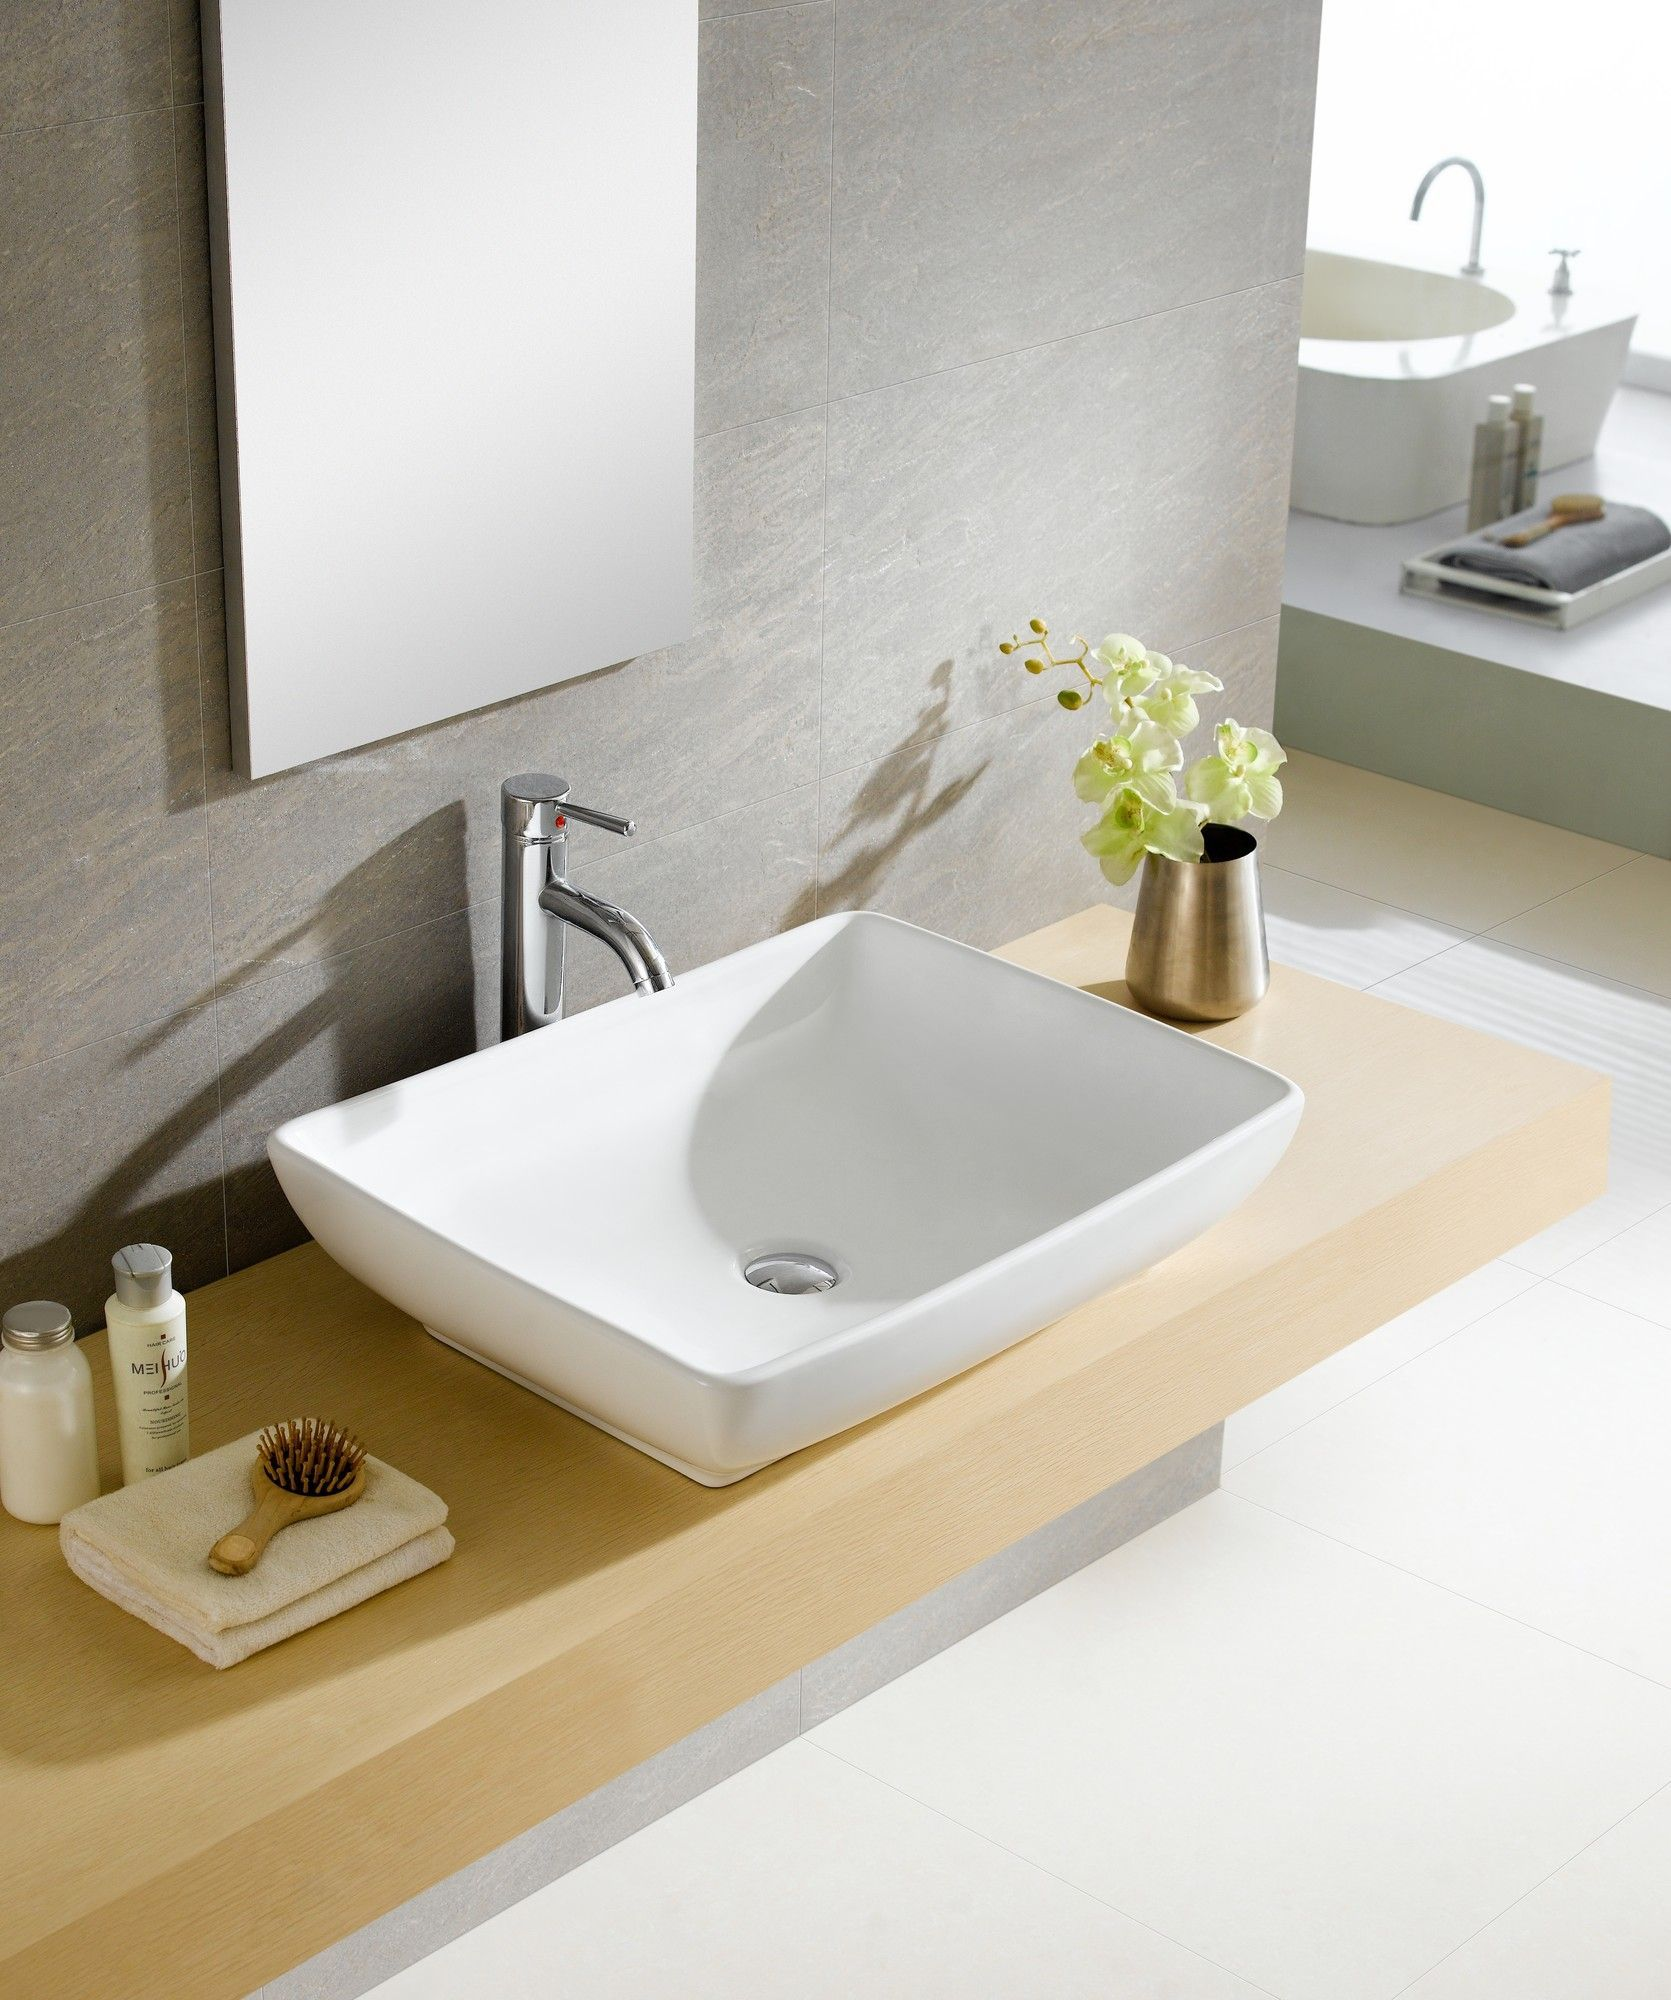 Sink finish white shape rectangular color white above counter sink sleek finish great feel and easy clean installation type vessel sink